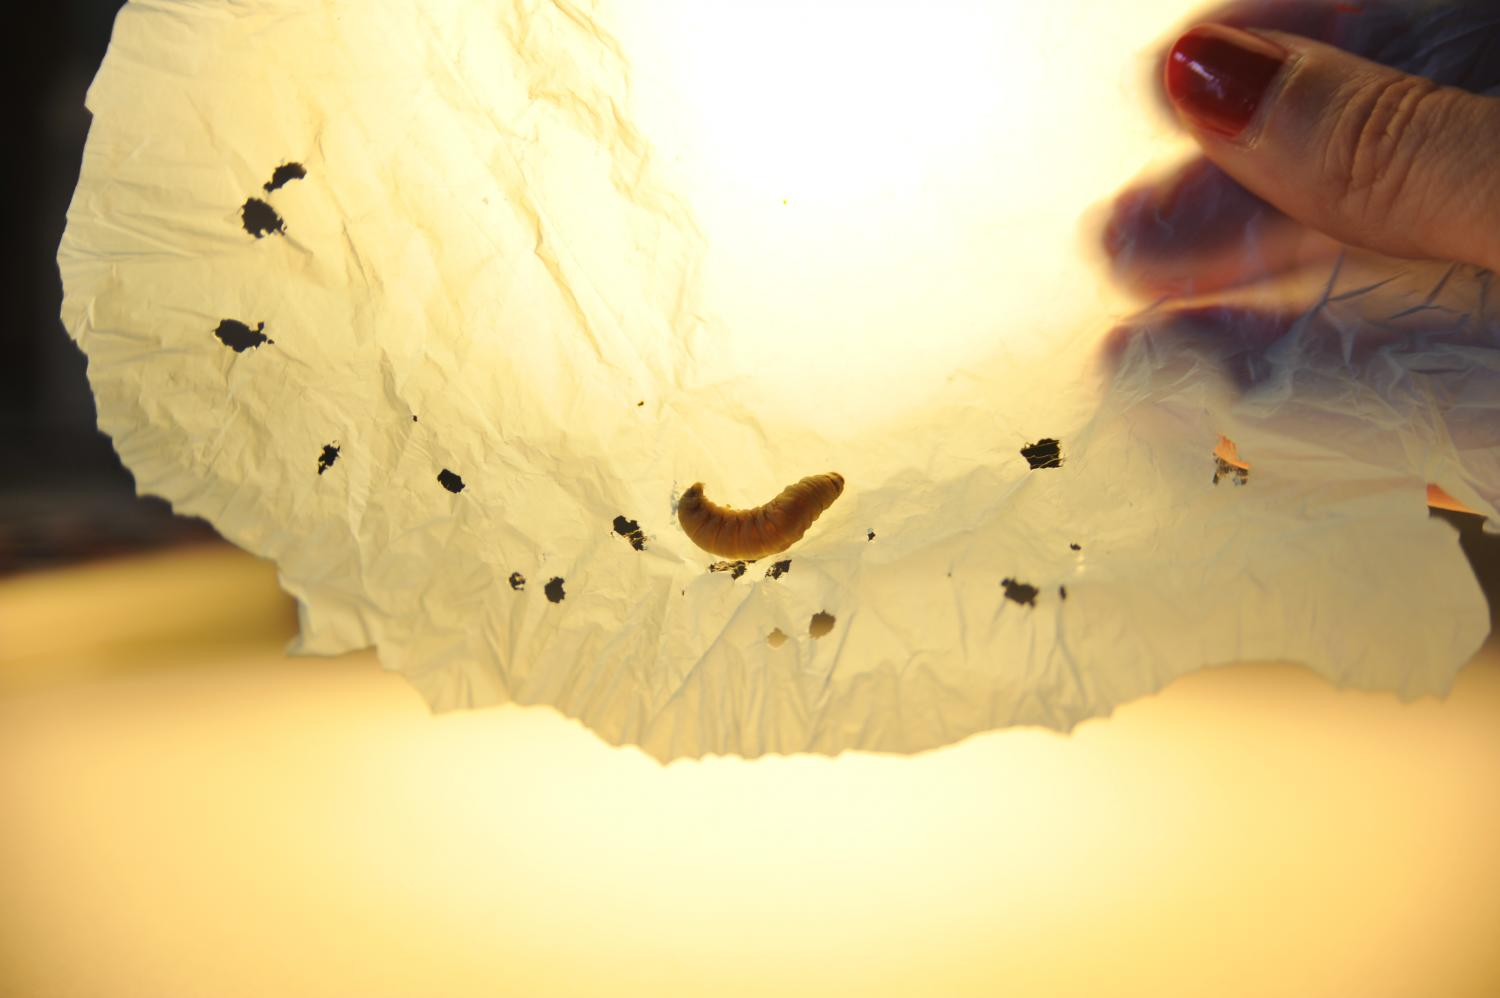 Plastic-Eating Caterpillars Could Help Bring an End to Pollution